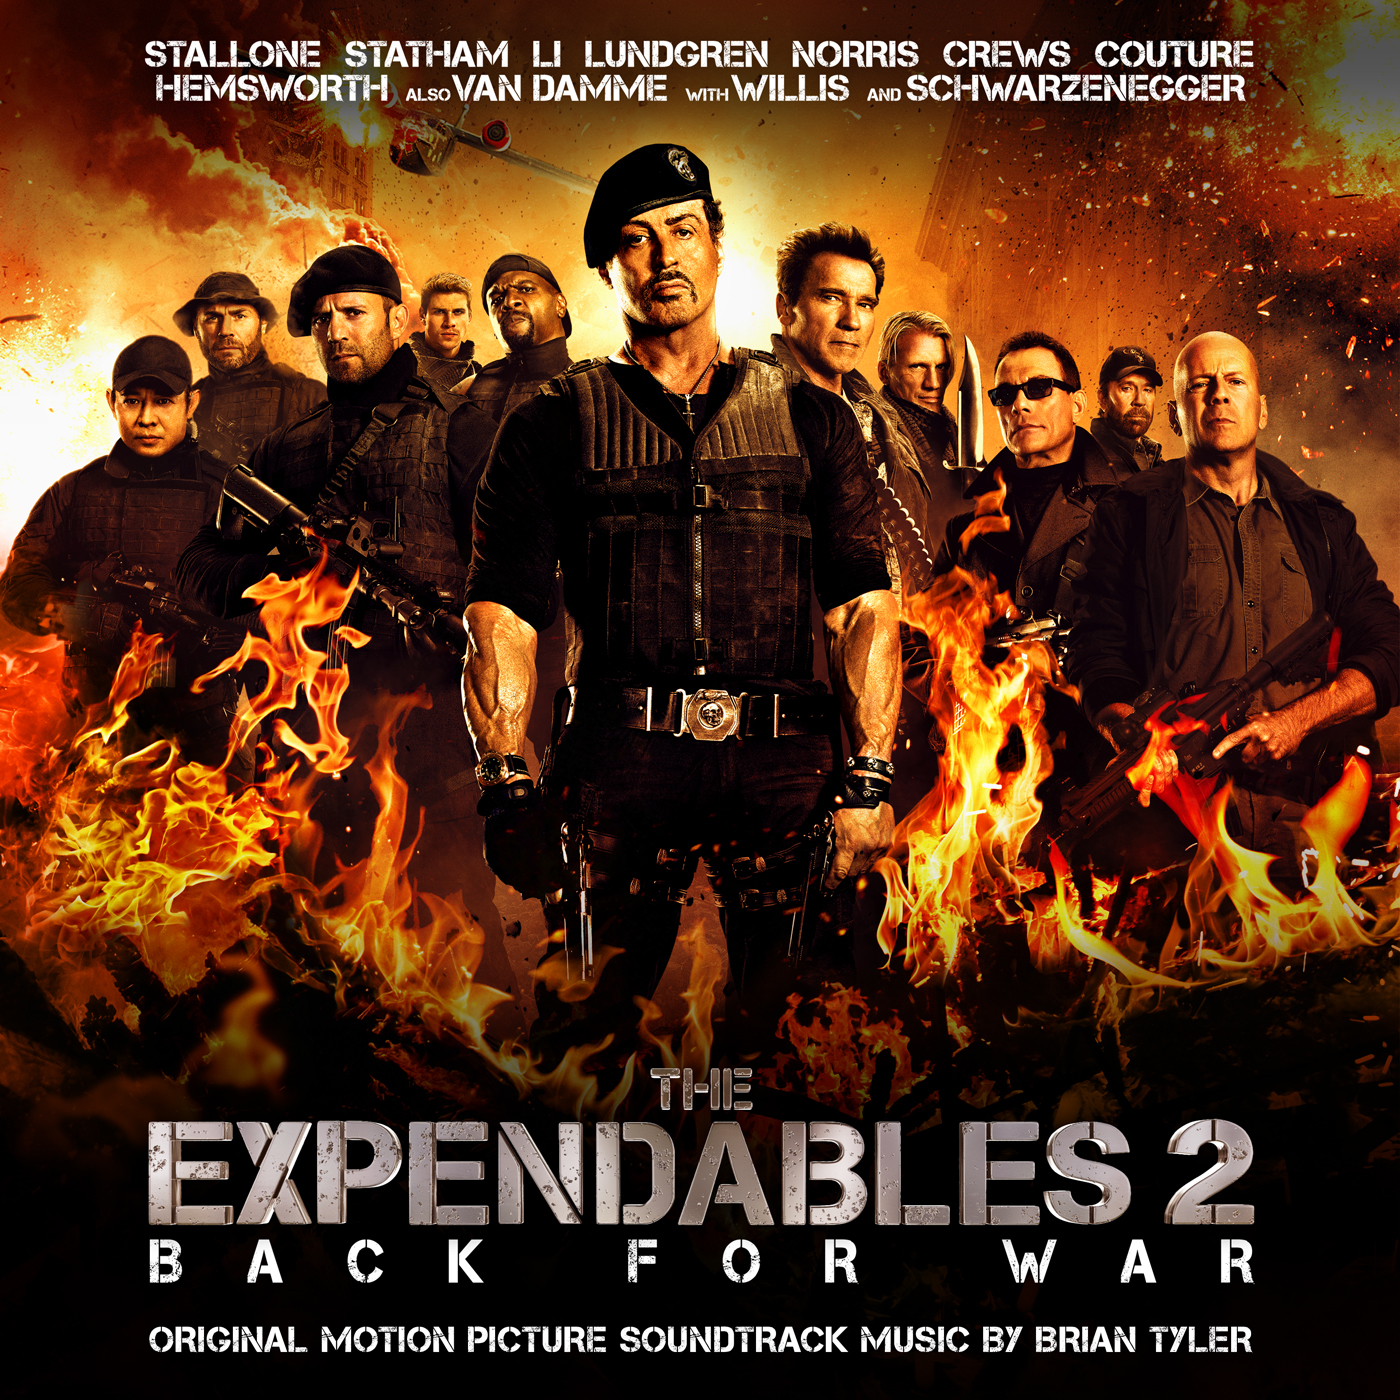 http://www.silvascreen.com/wp-content/uploads/SILCD1393_TheExpendables2.jpg